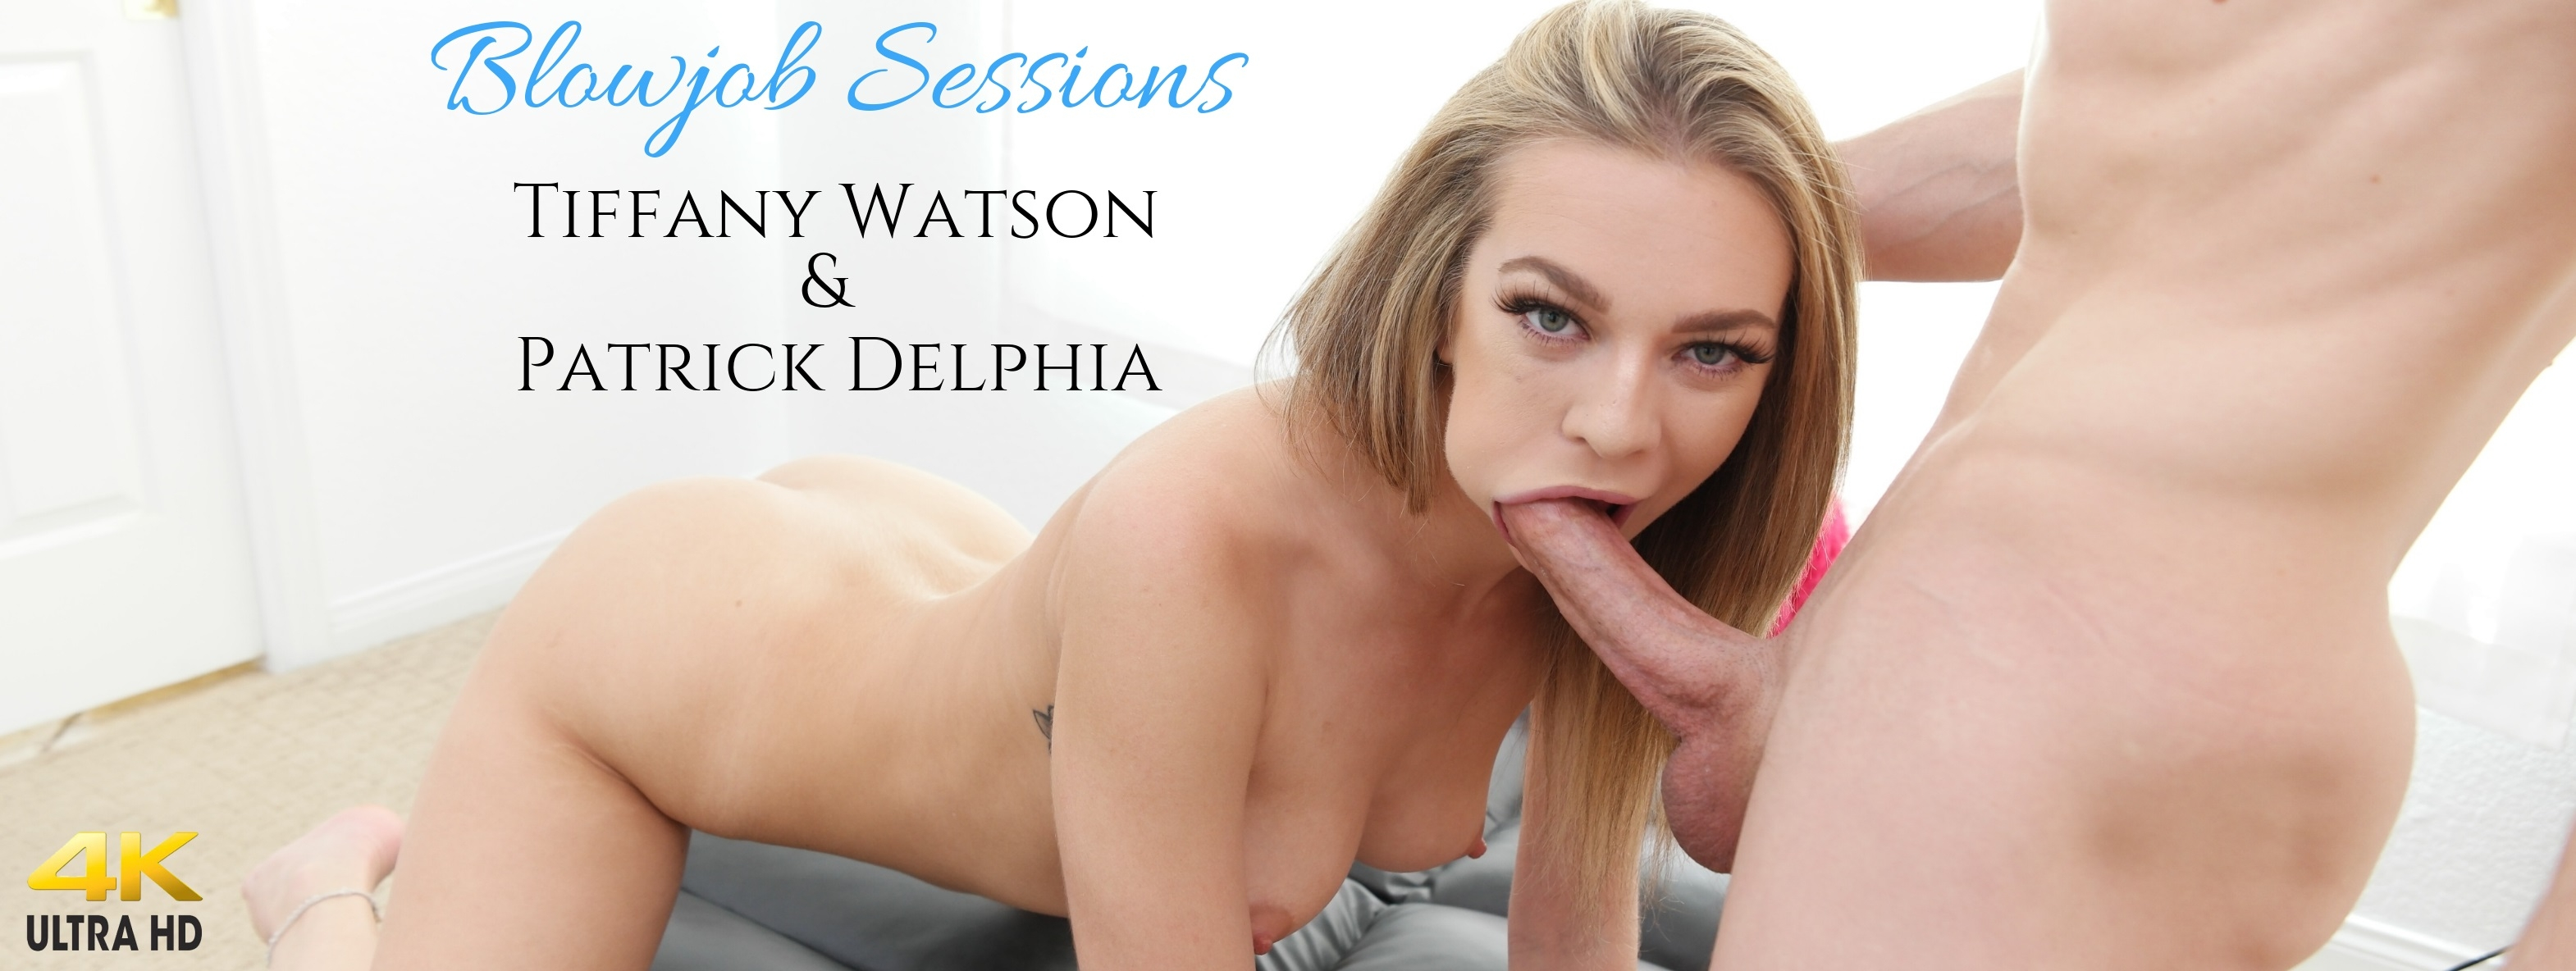 content/Blowjob_Sessions_With_Tiffany_Watson/8.jpg